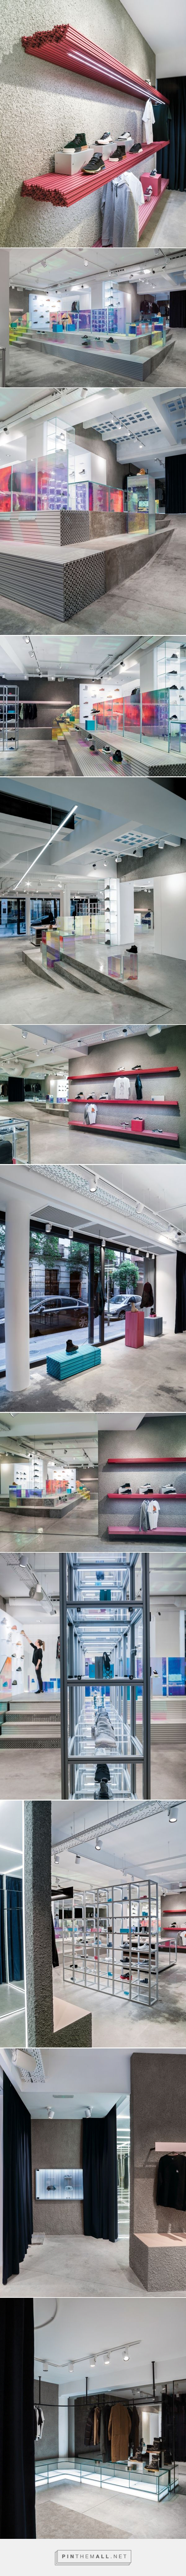 aluminium extrusion redefines a sneakers store in madrid, by A.P.O. - created via https://pinthemall.net